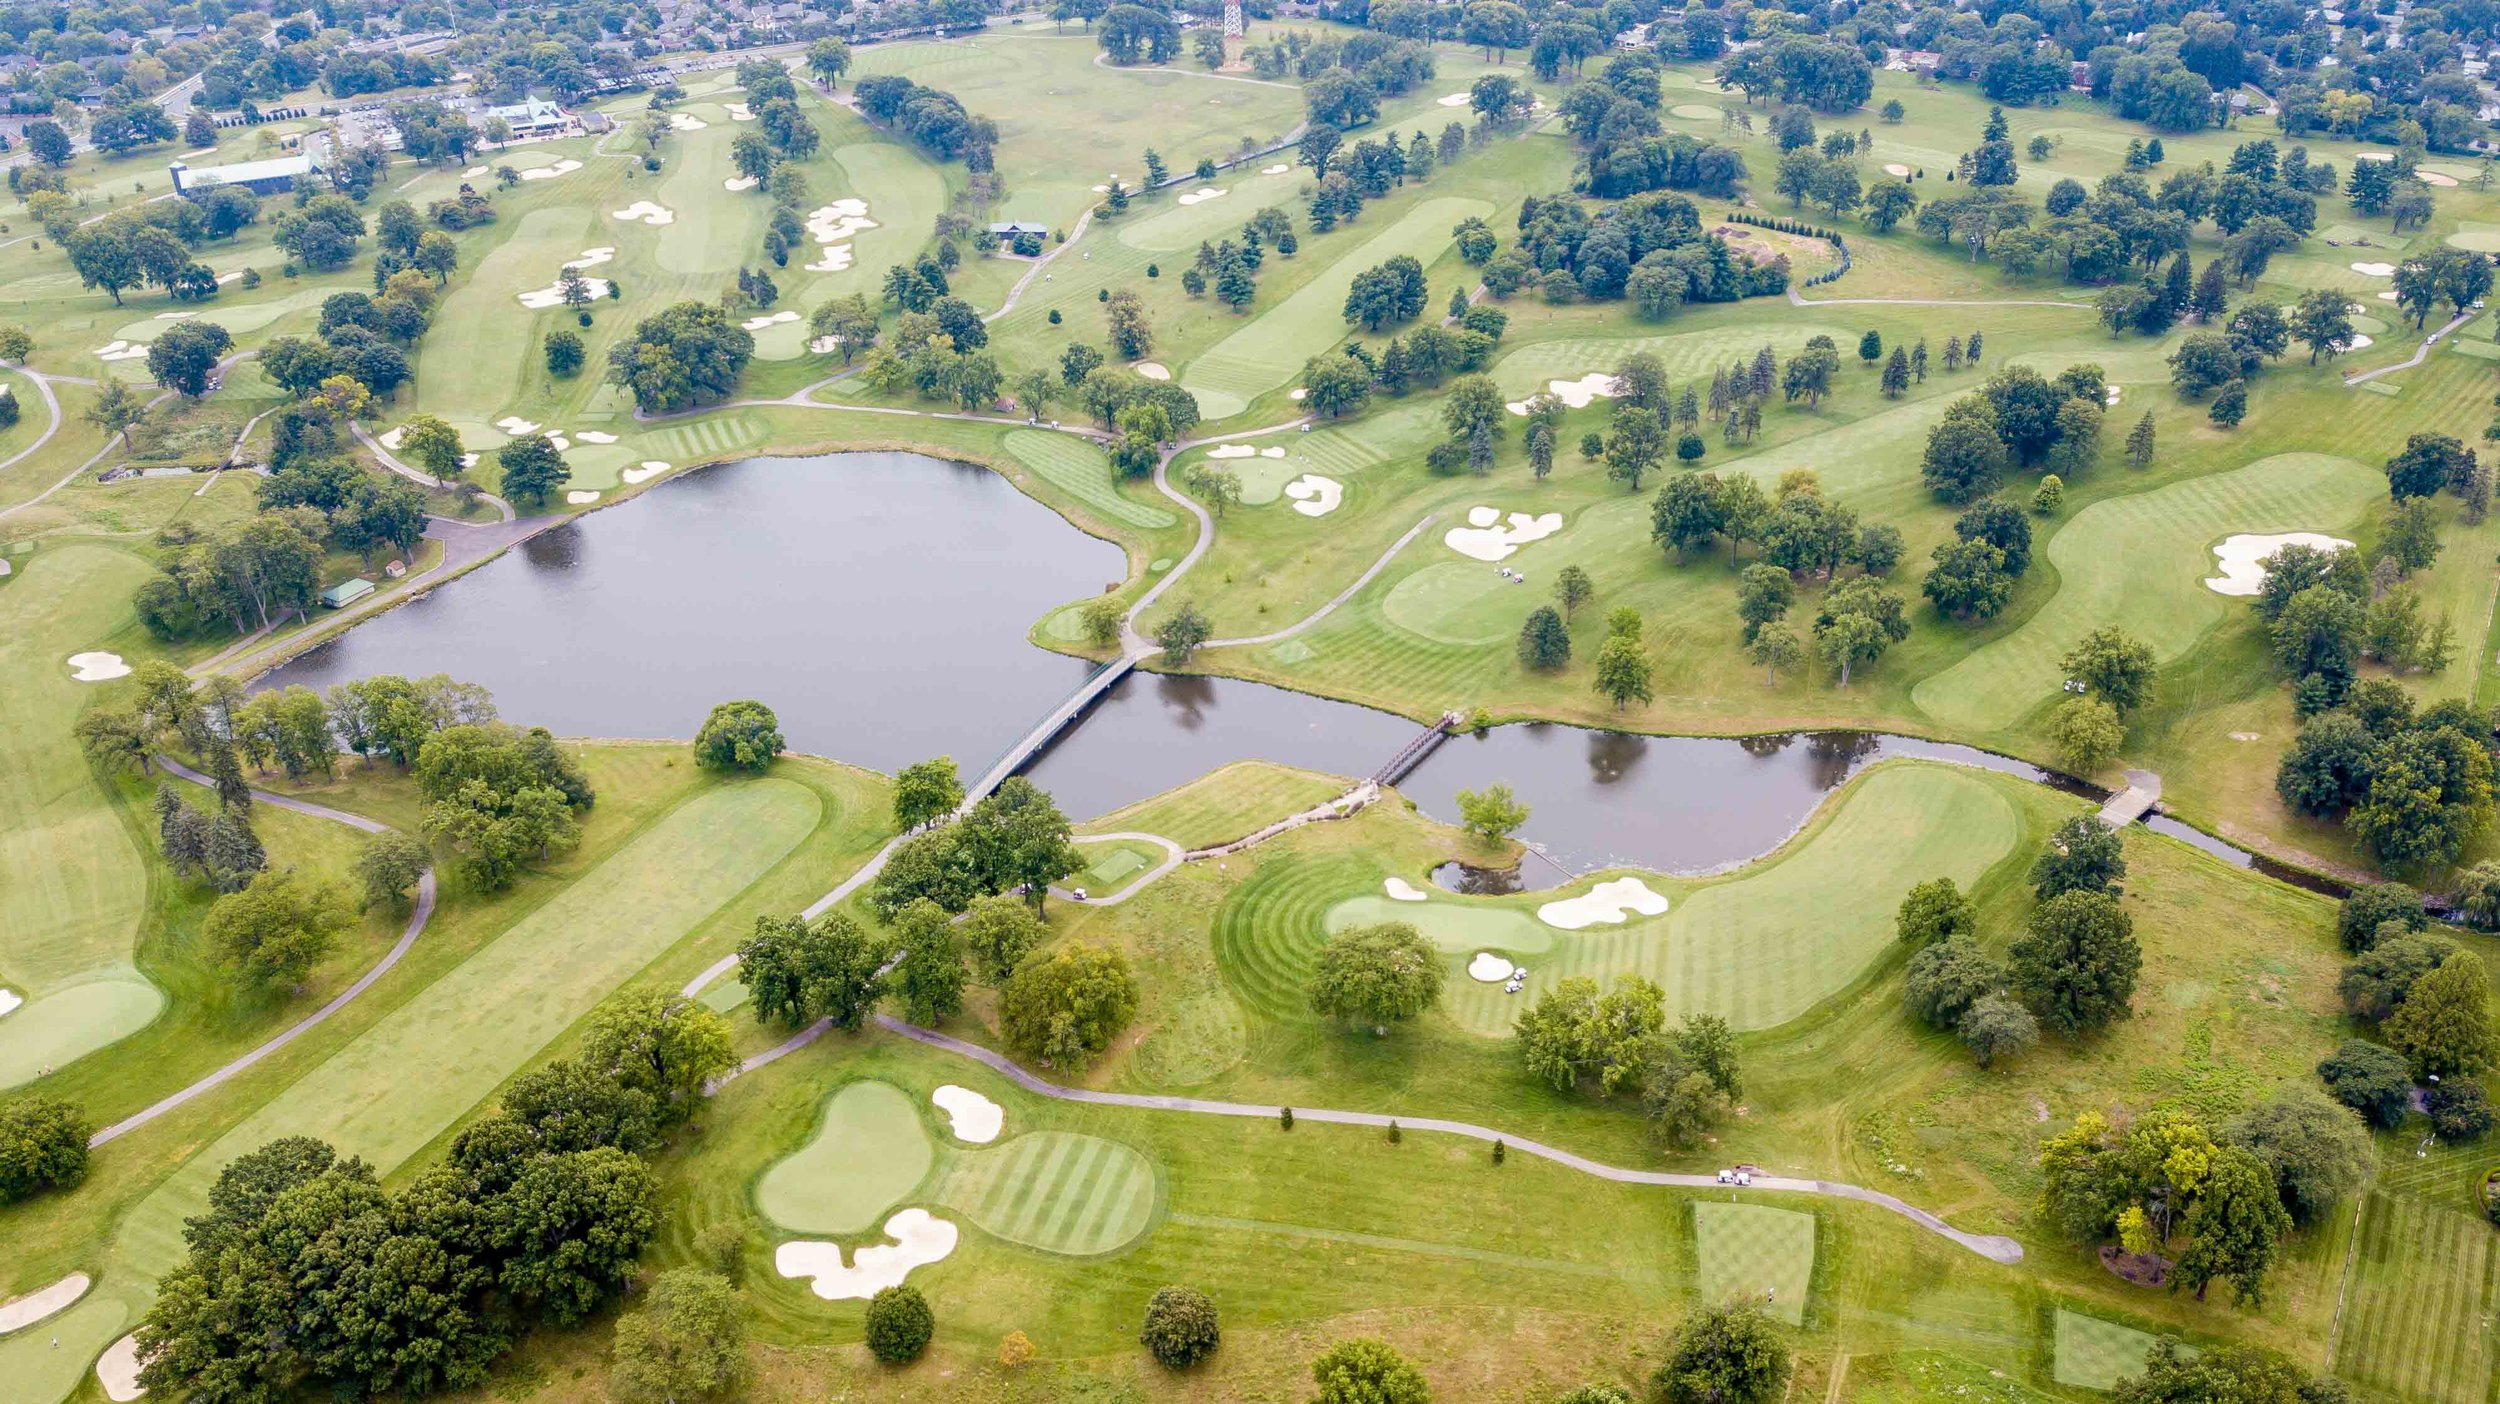 The view from above the Scarlet and Gray courses at Ohio State University